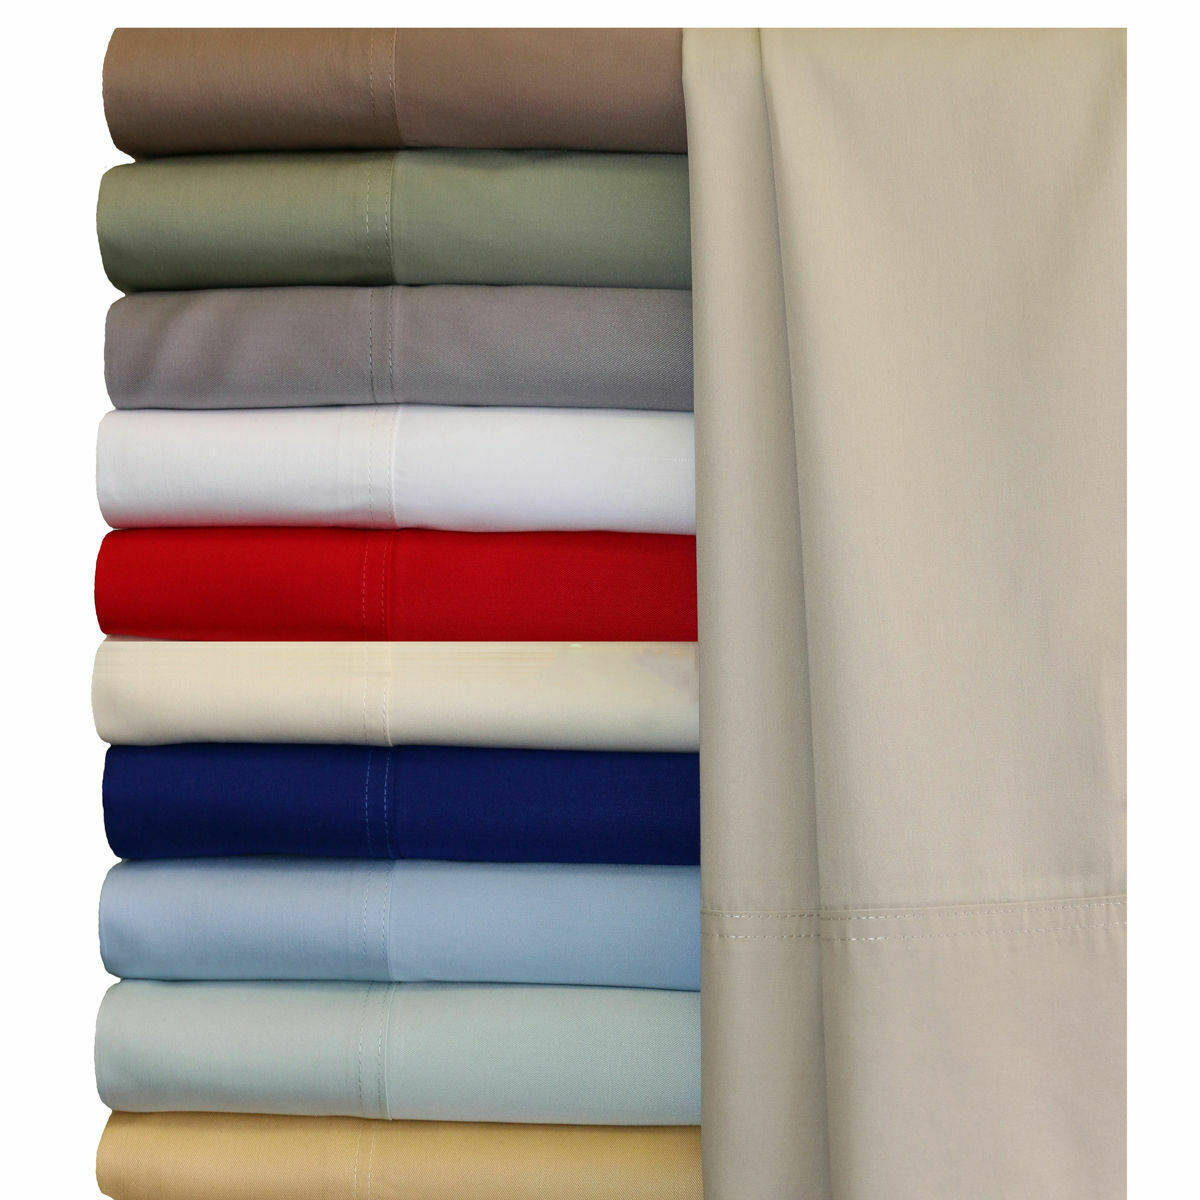 RV King Size 4 PC or 6 PC Sheet Set 1200 Thread Count Egyptian Cotton Solid